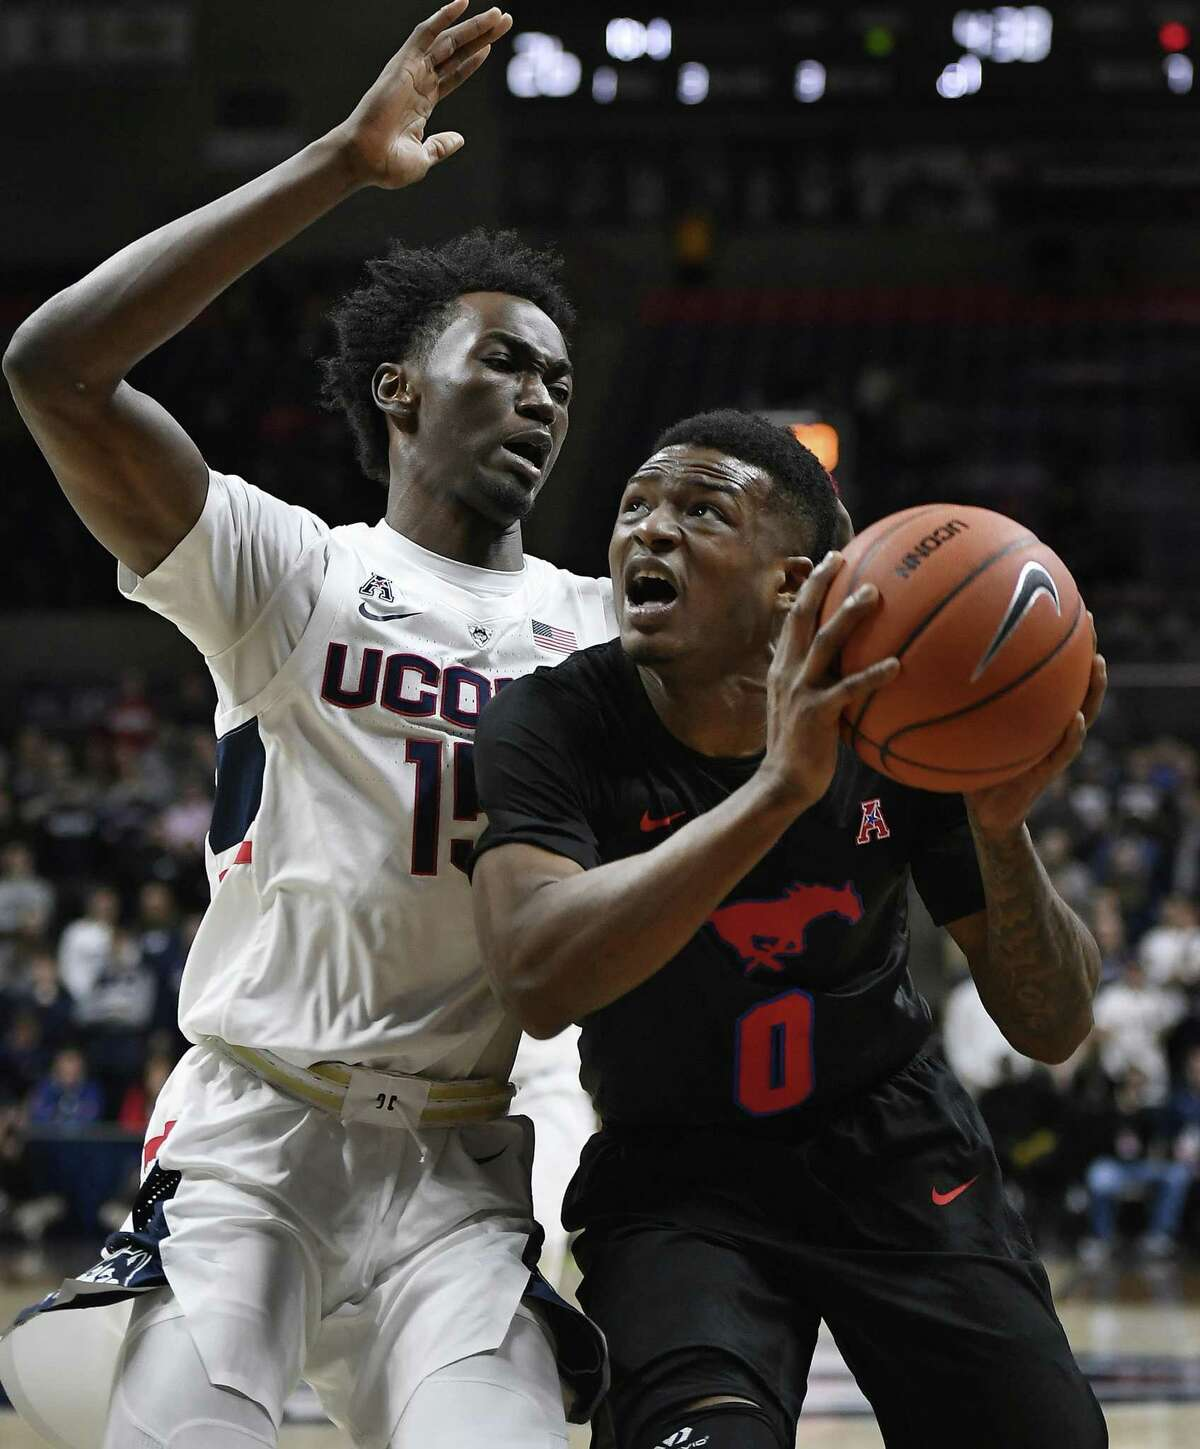 SMU's Jahmal McMurray, right, looks to shoot while defended by UConn's Sidney Wilson, left, defends, on Thursday night in Storrs.